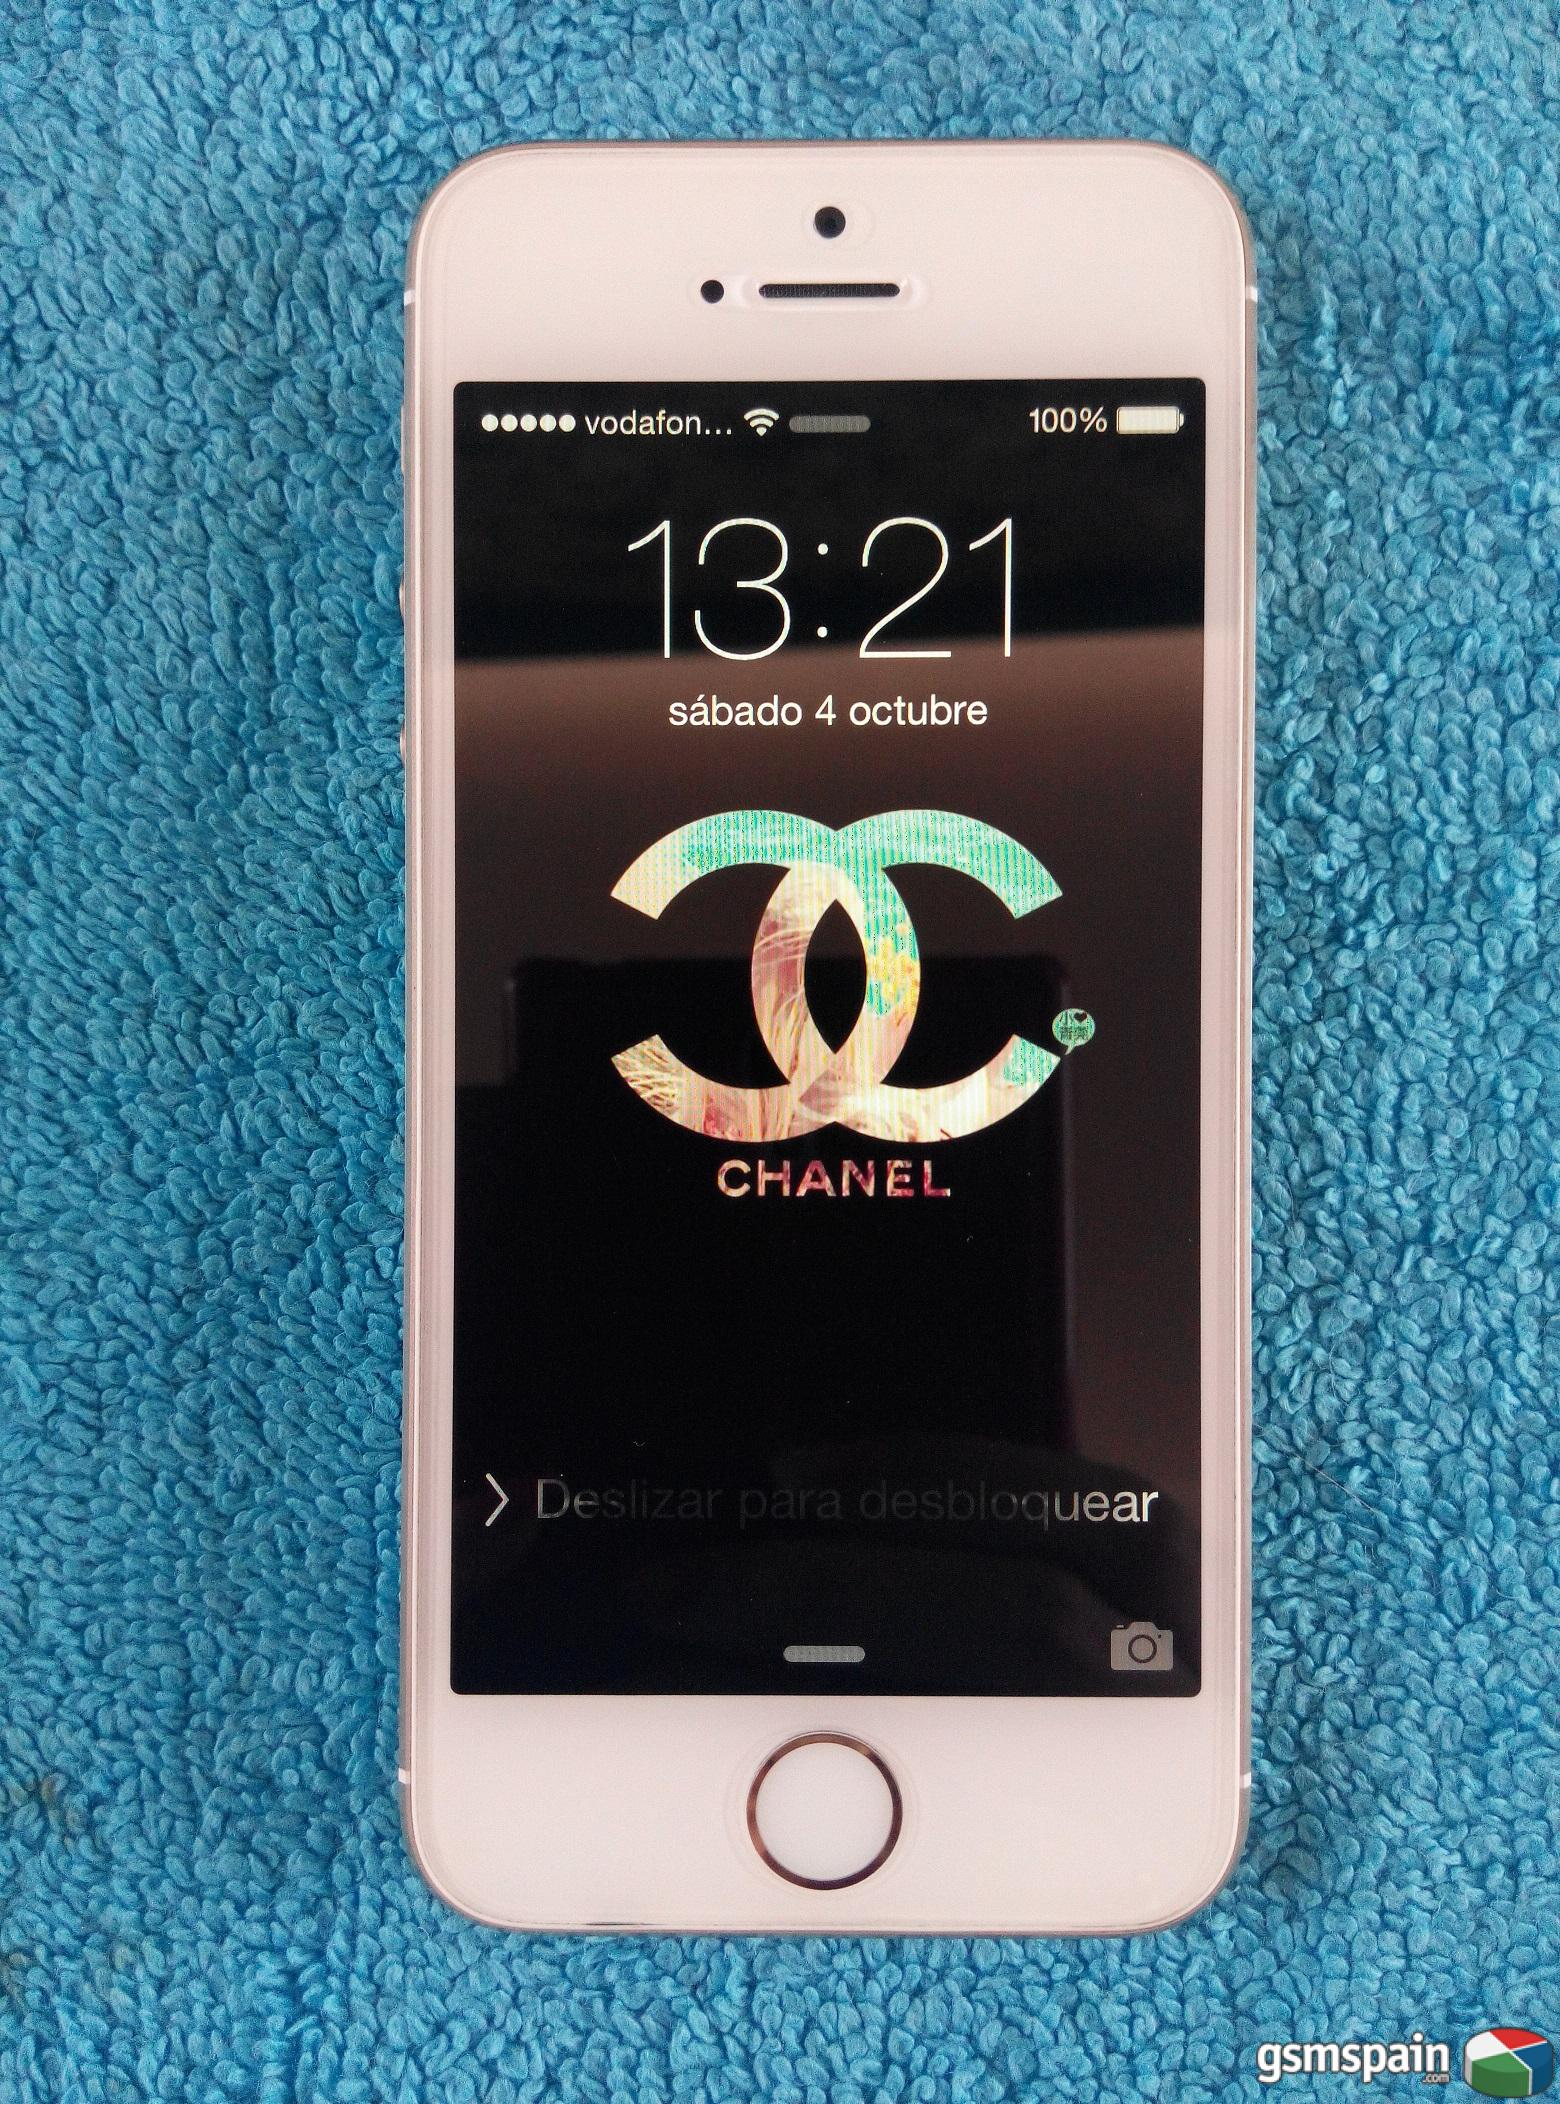 Precio De Iphone 5s Libre Vendo Iphone 5s 16gb Libre De Gabrica Cplor Oro